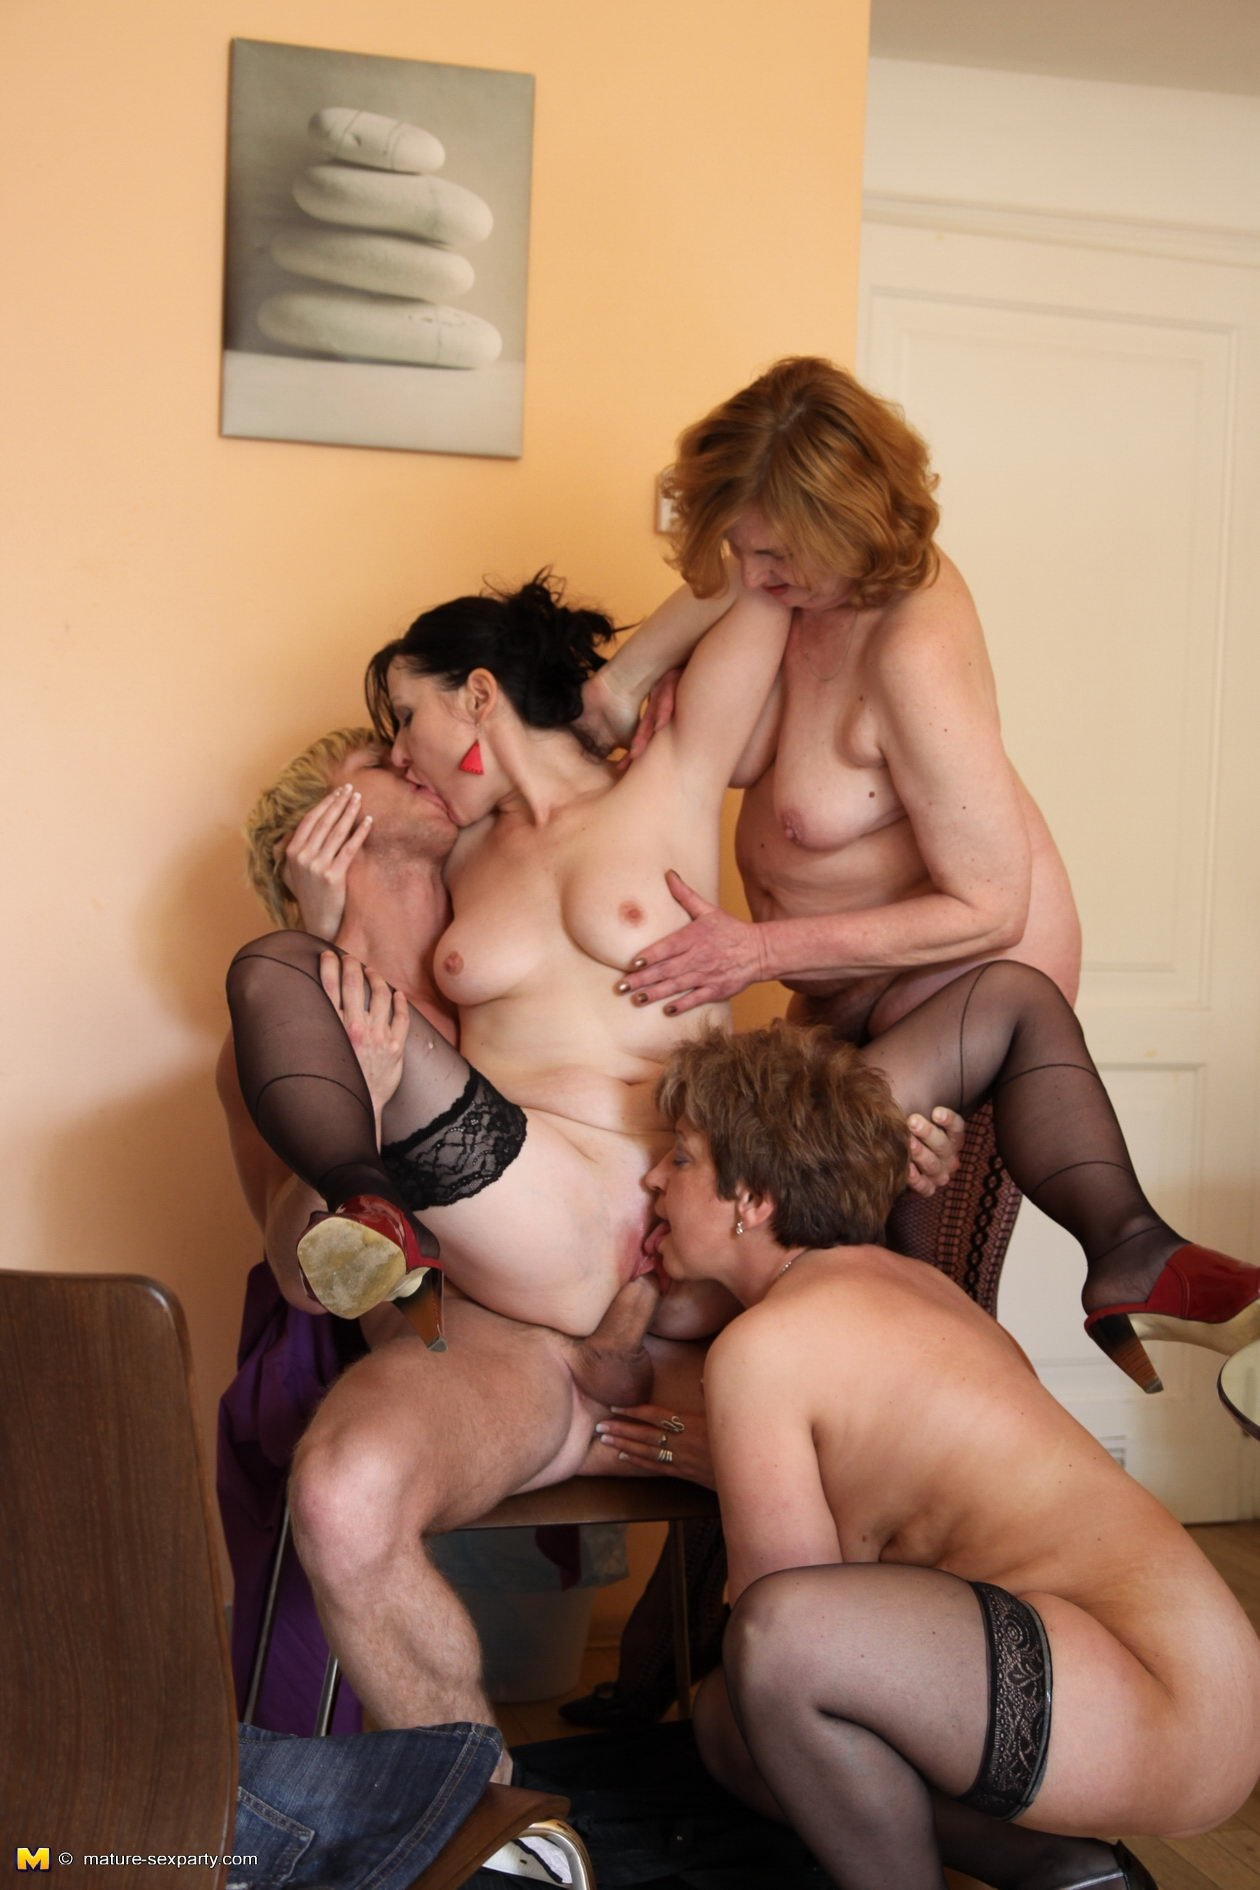 Camelstyle redhead girlfriends give great blowjob